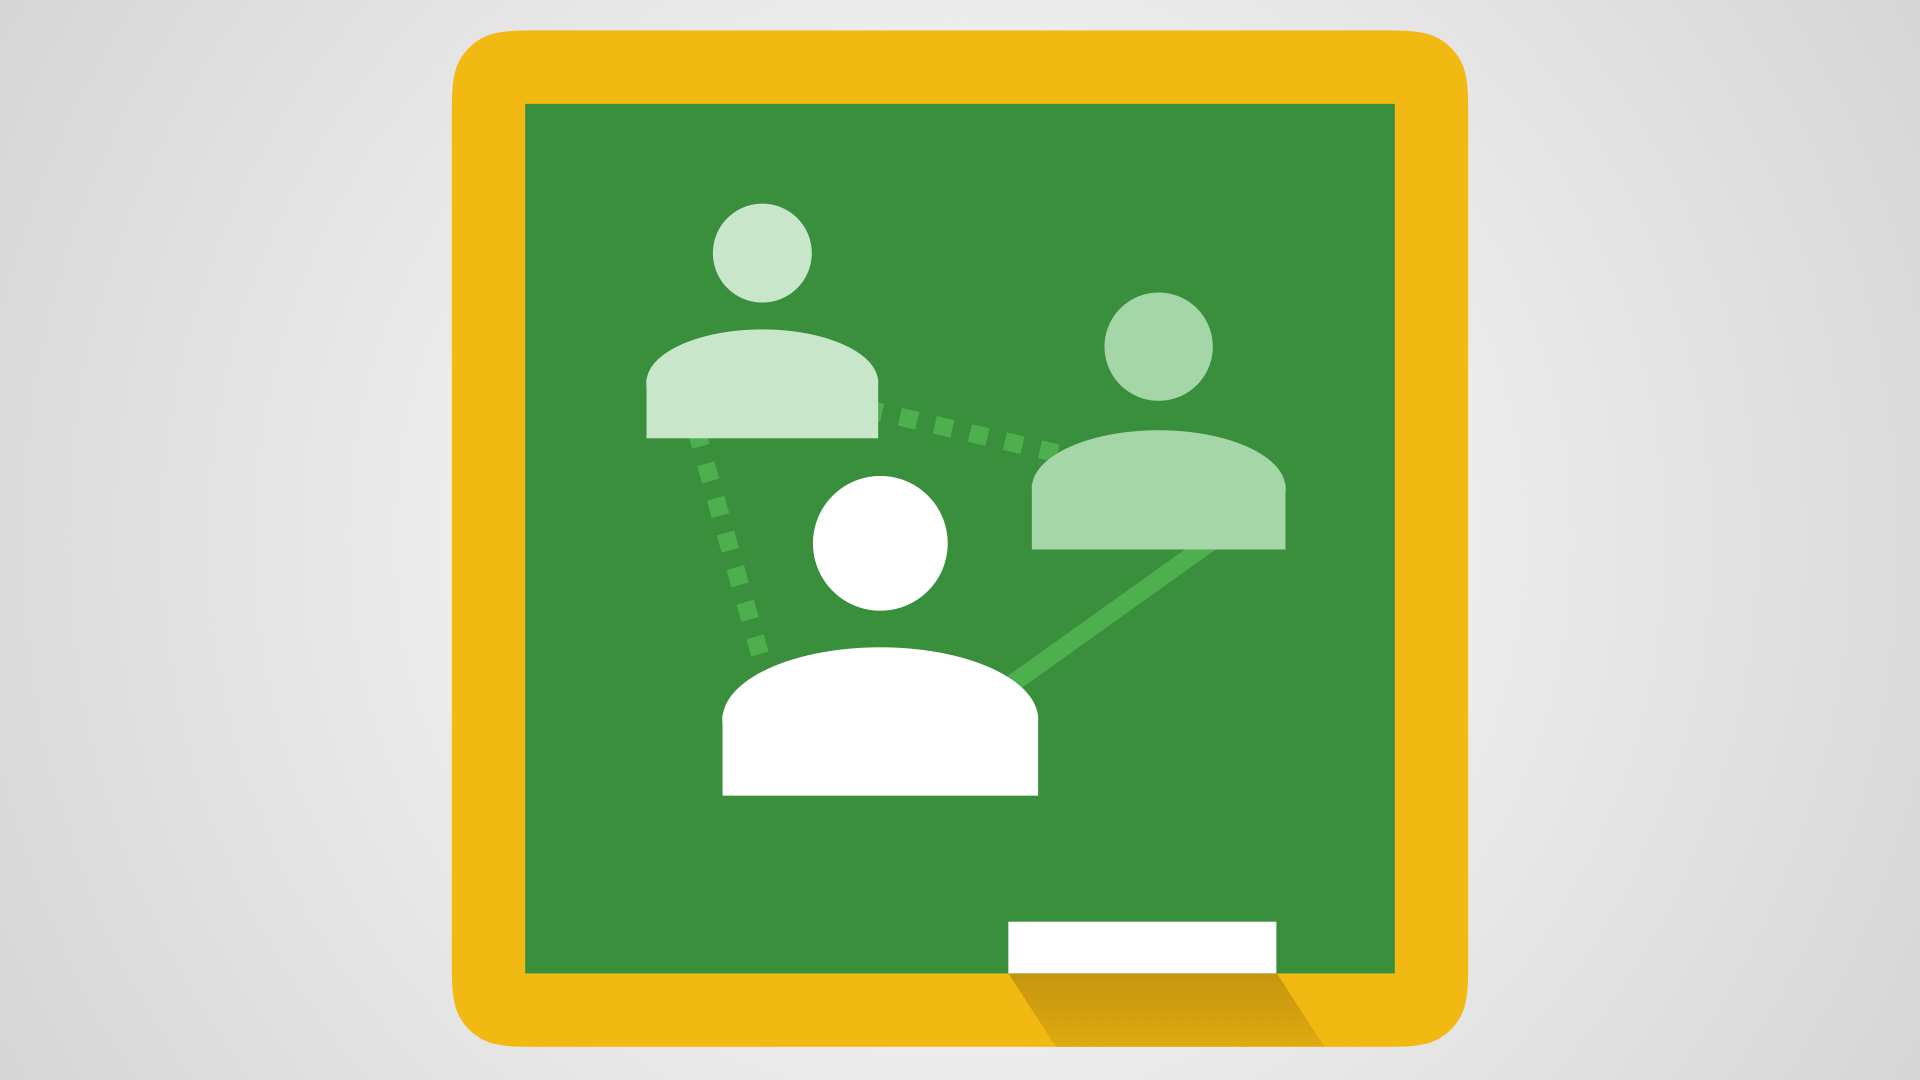 learninginhand.com - Tony Vincent - Google Classroom for Professional Learning